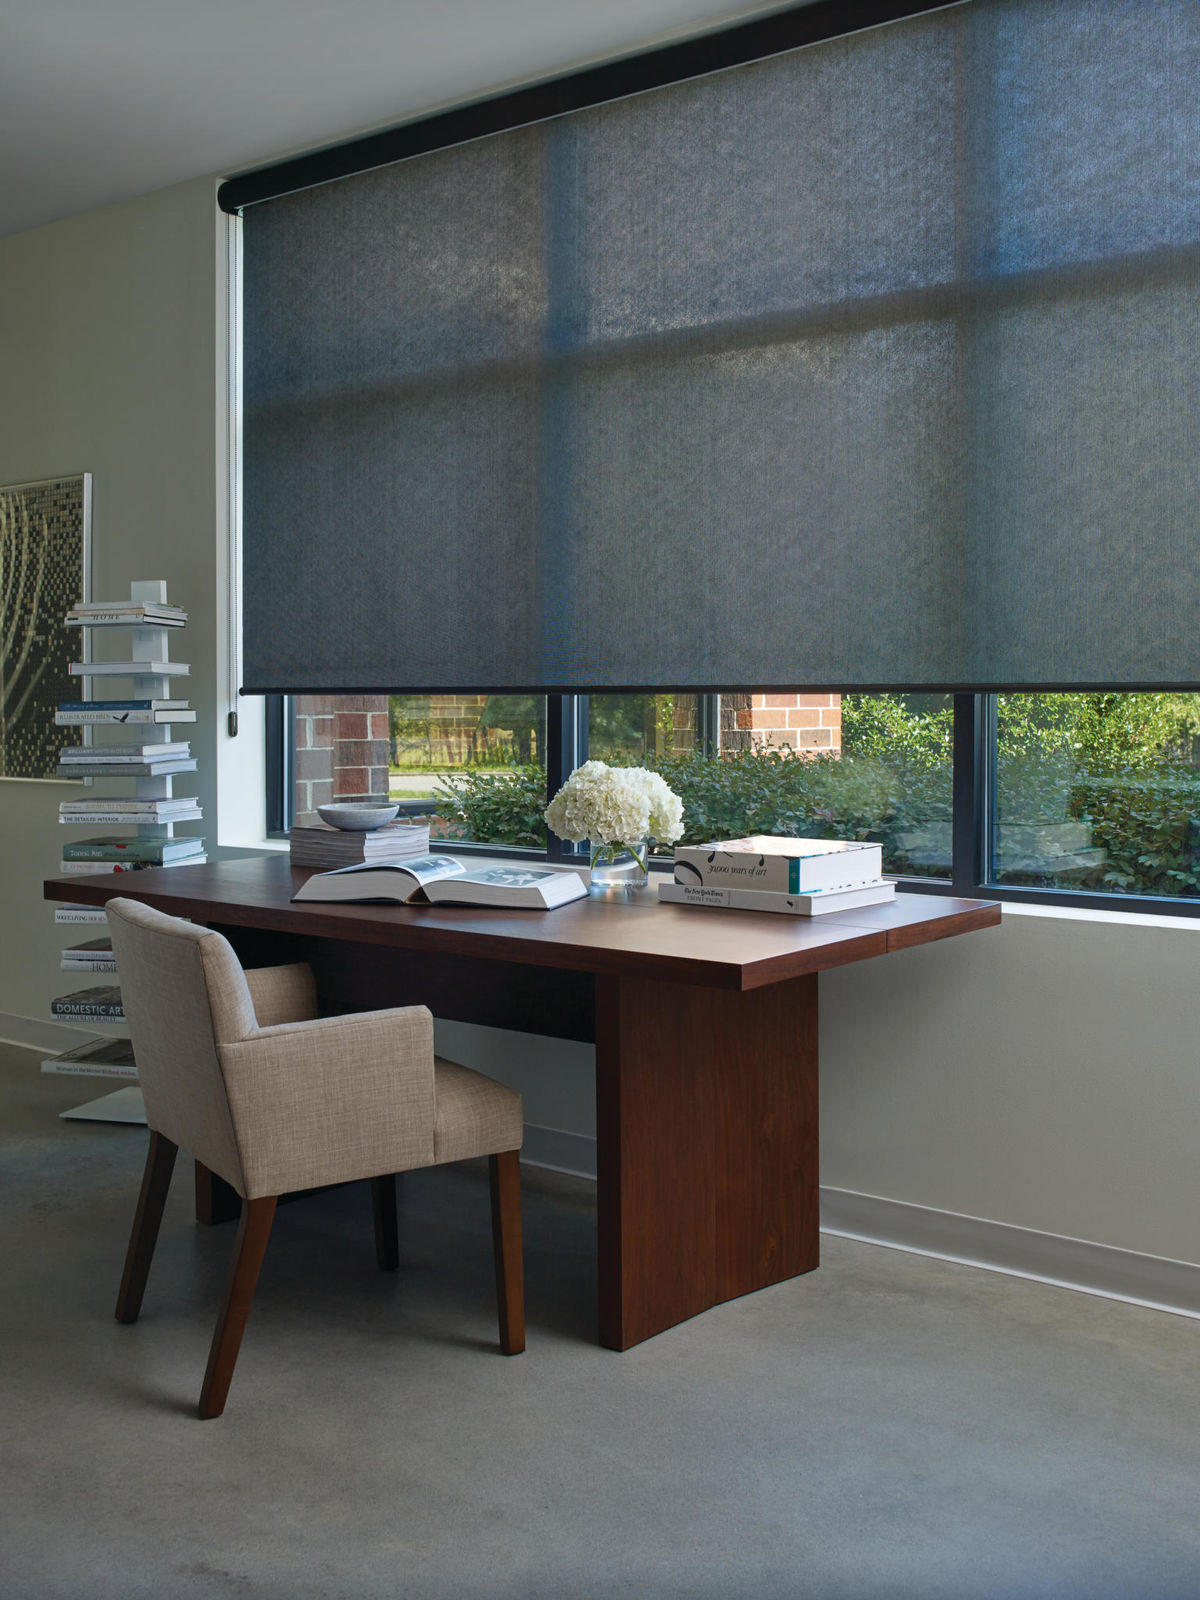 Designer Screen Shades in Radiant Twilight